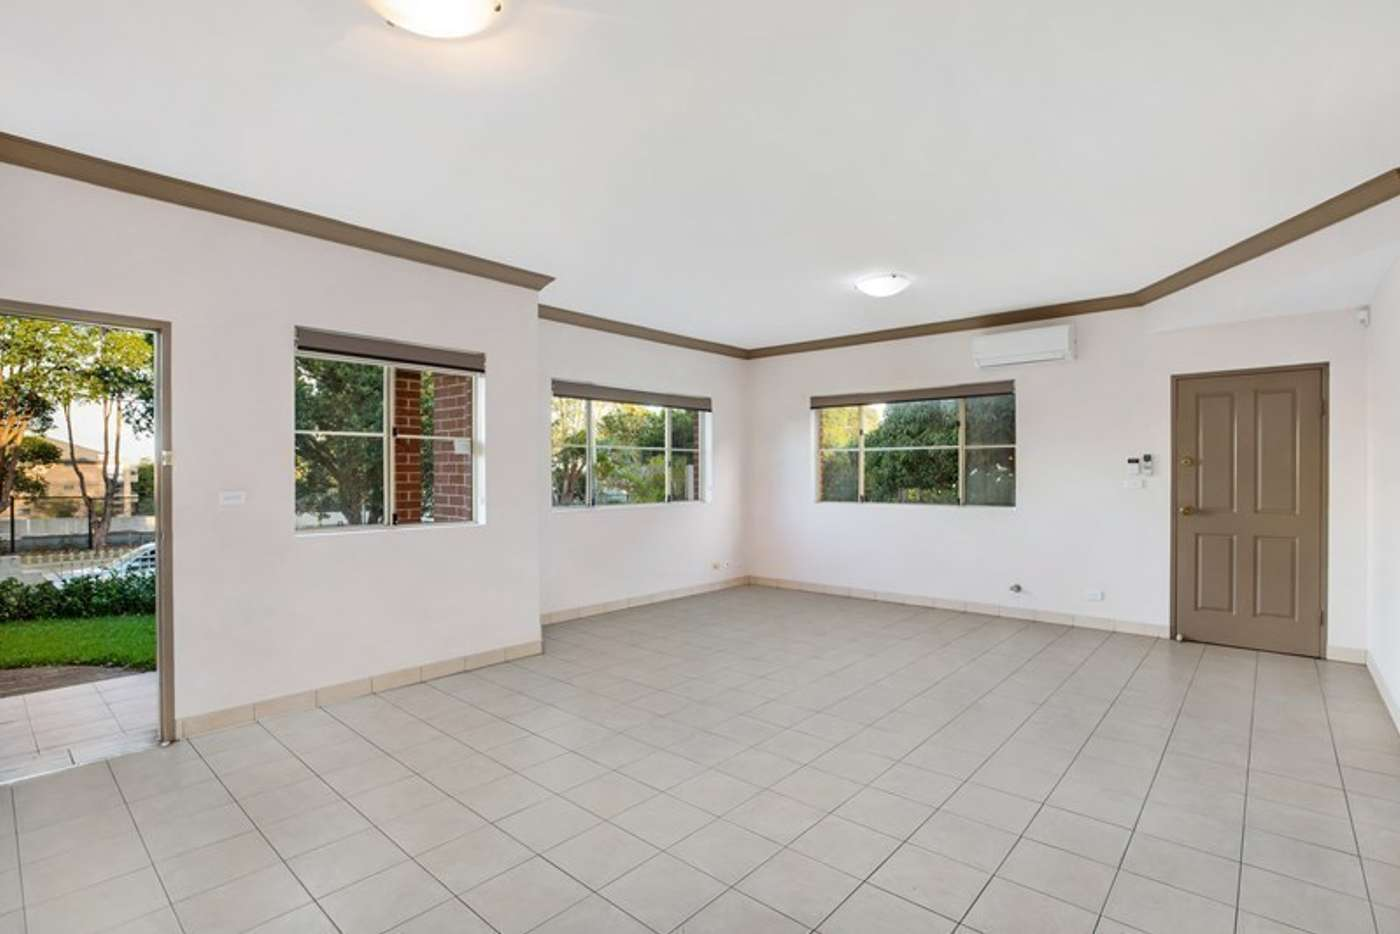 Fifth view of Homely townhouse listing, 1/59 Queen Street, North Strathfield NSW 2137